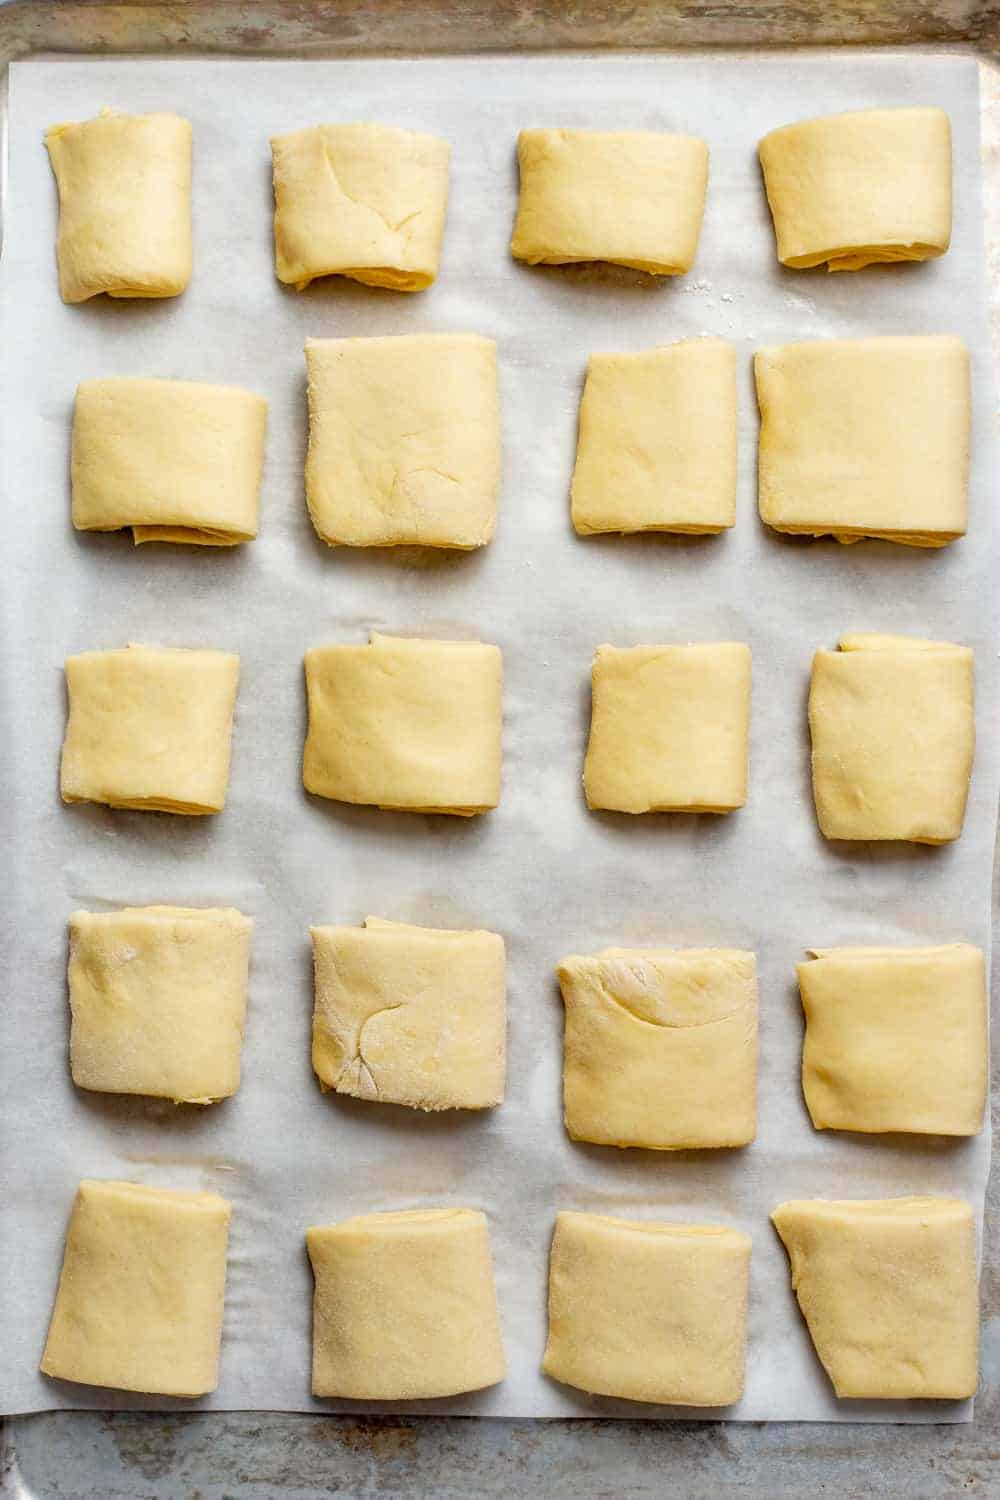 Shaped parker house rolls on a parchment-lined baking sheet